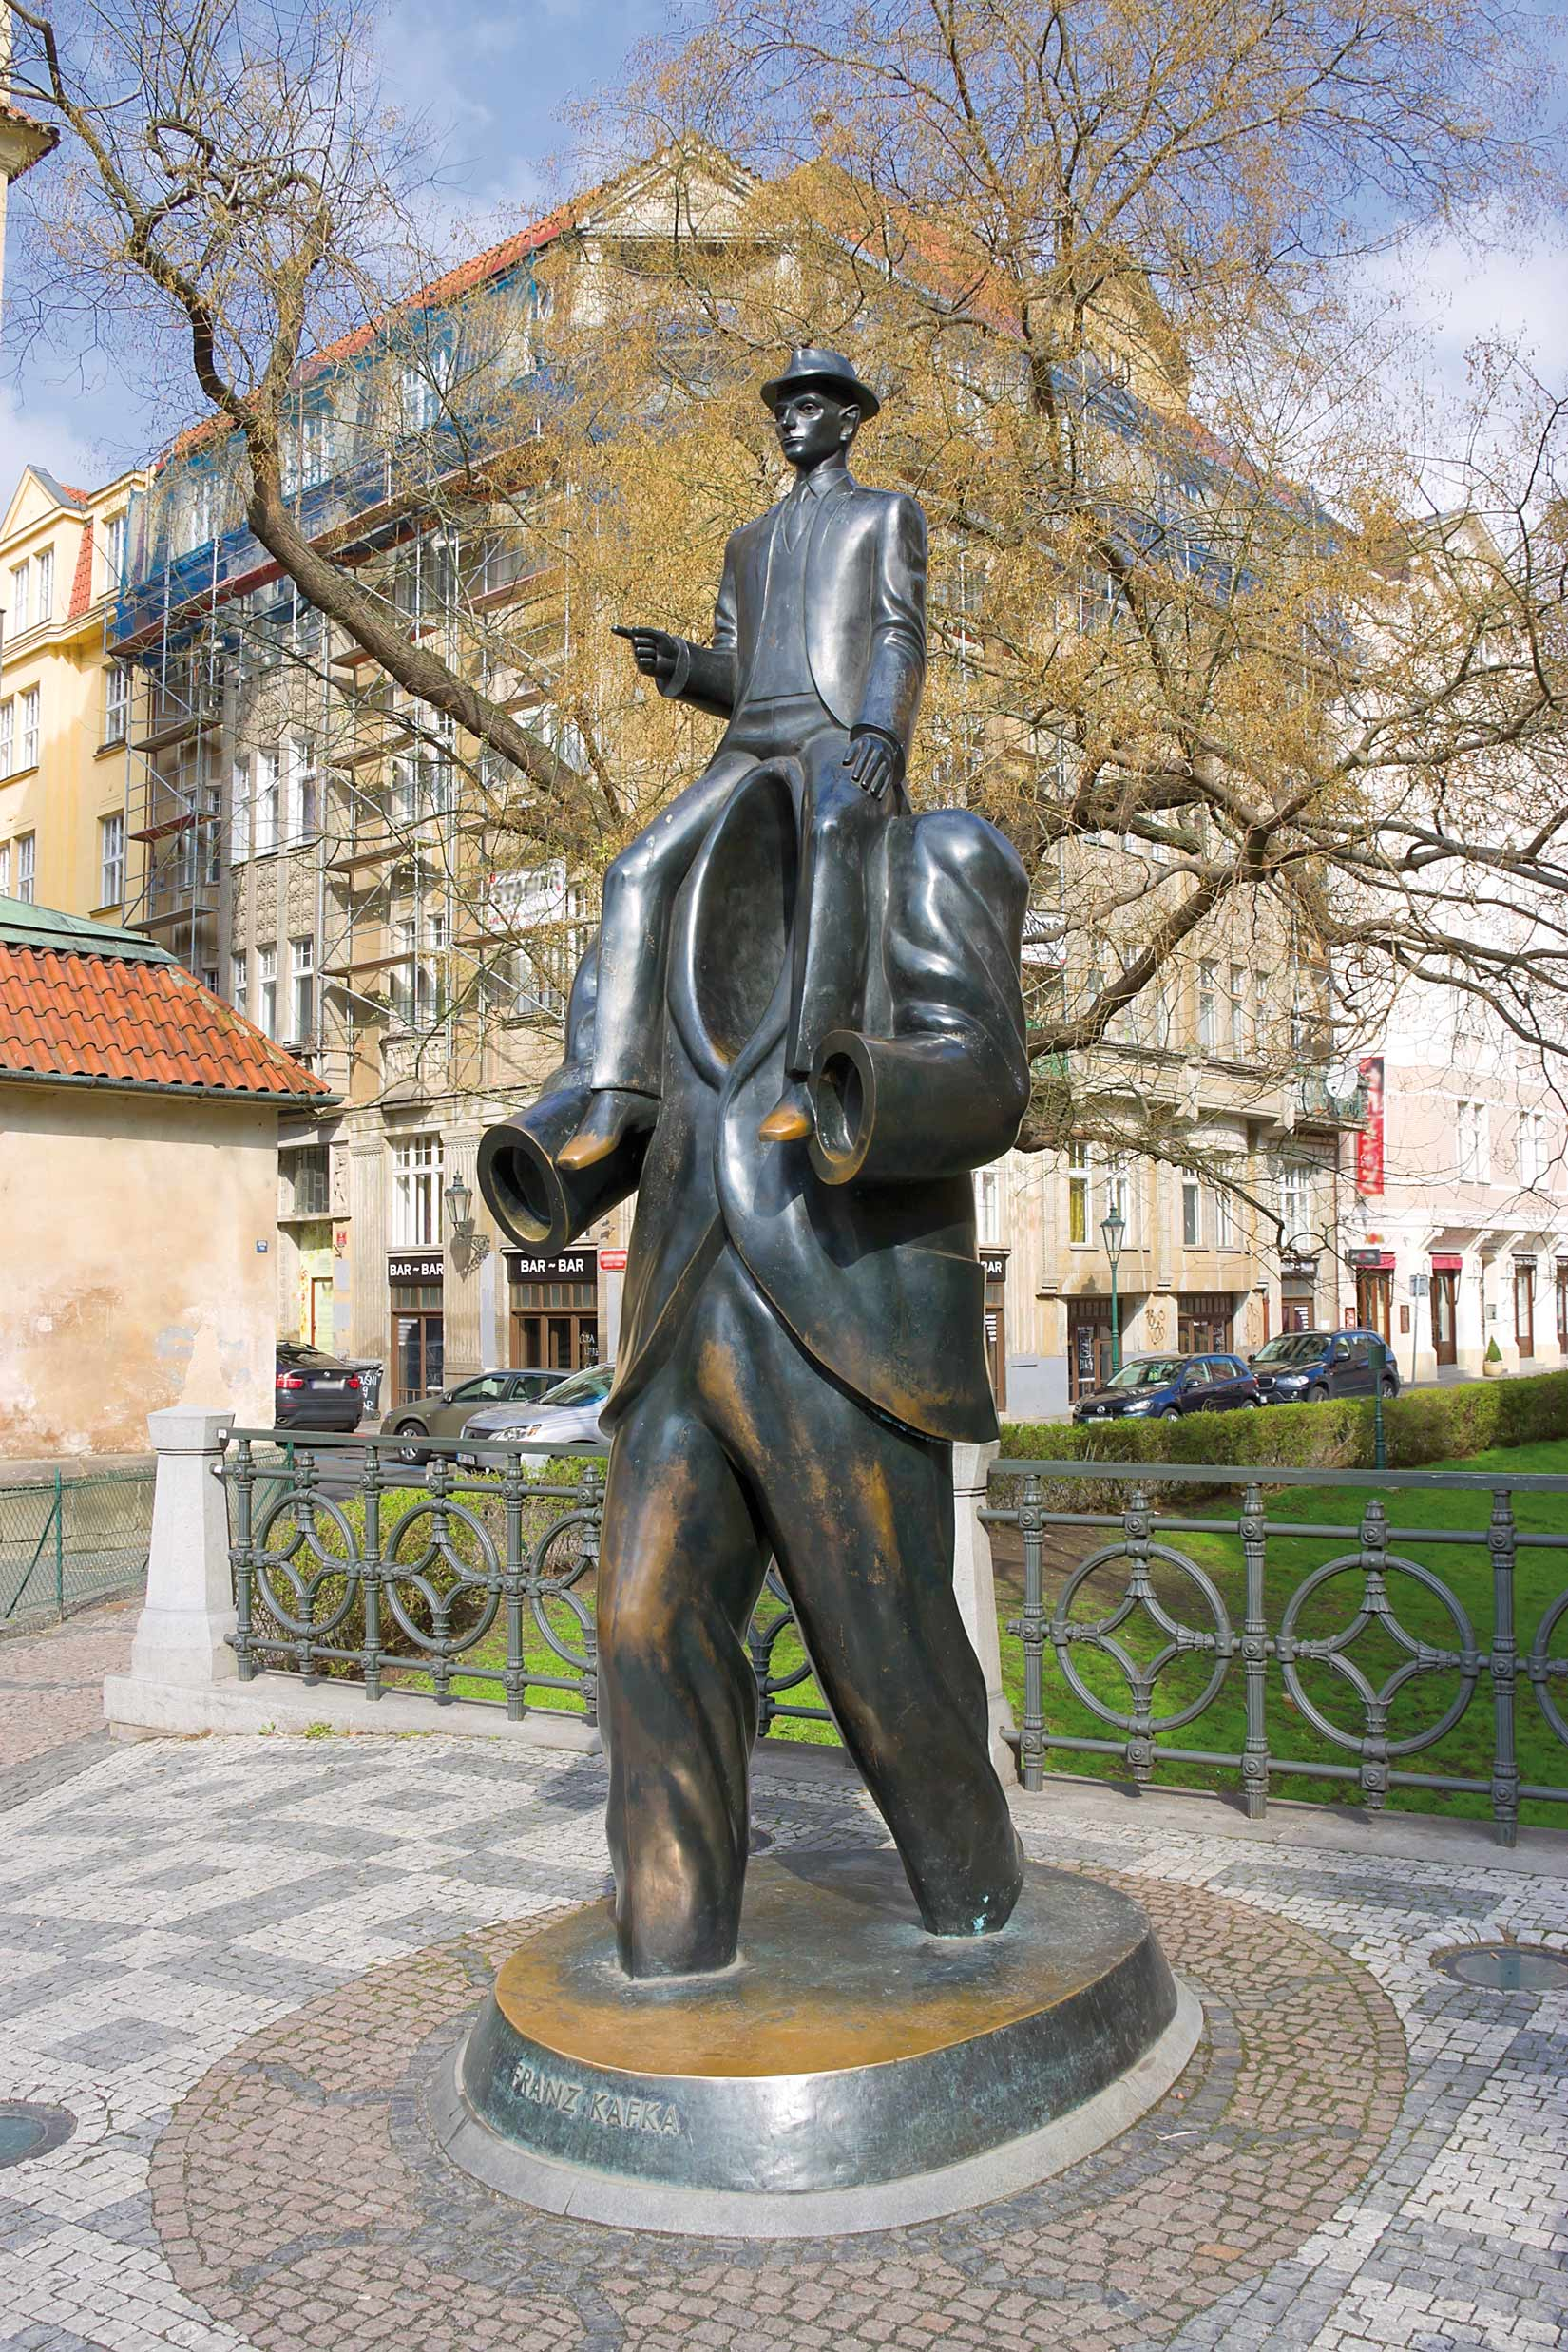 "Today Kafka has become an emblem of Prague, commemorated throughout the city. Guides offer tours of ""Kafka's Prague,"" in which this bronze statue by Jaroslav Rona – based on Kafka's Description of a Struggle – is a highlight. Its location near Prague's Spanish synagogue is also the area where Kafka lived most of his life"